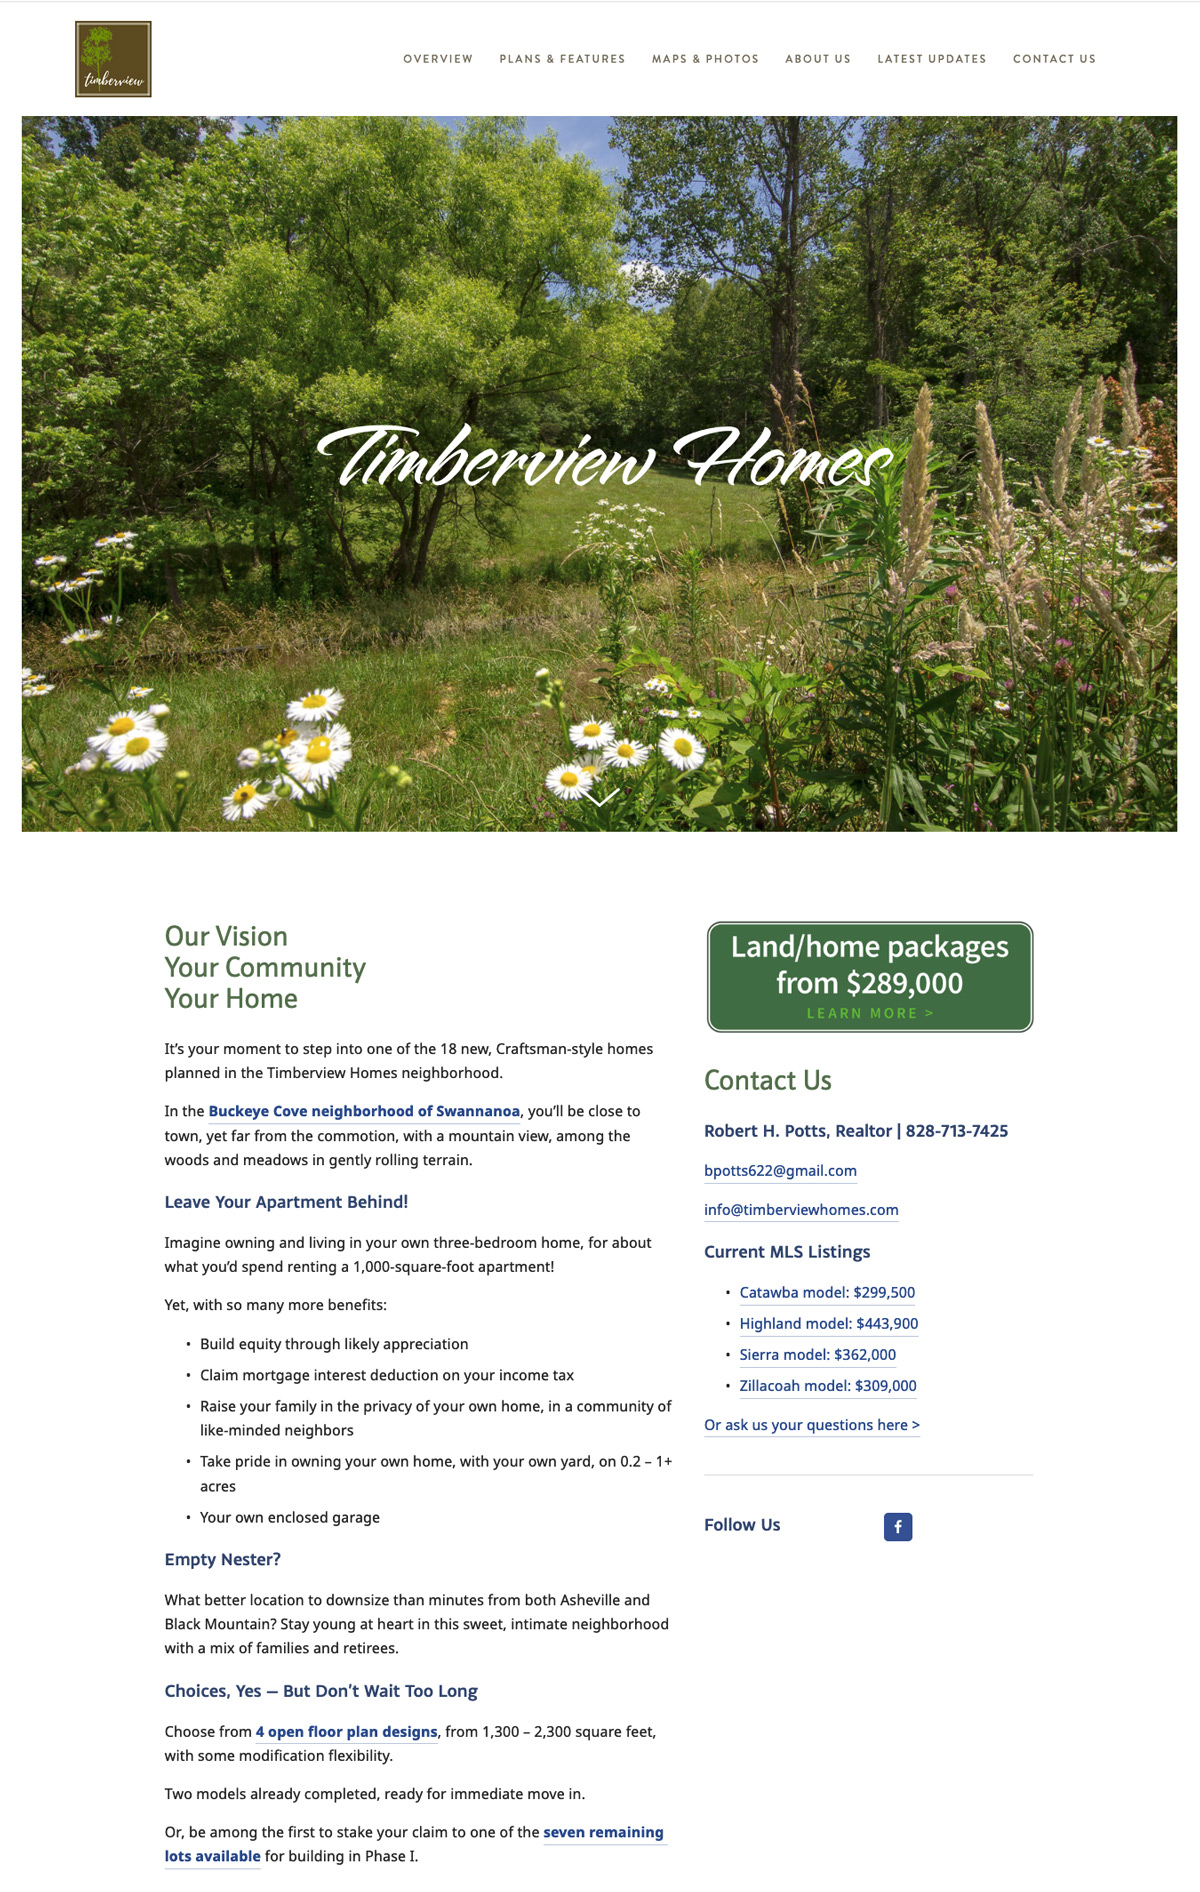 Timberview-Homes-Home-Pg-1.jpg